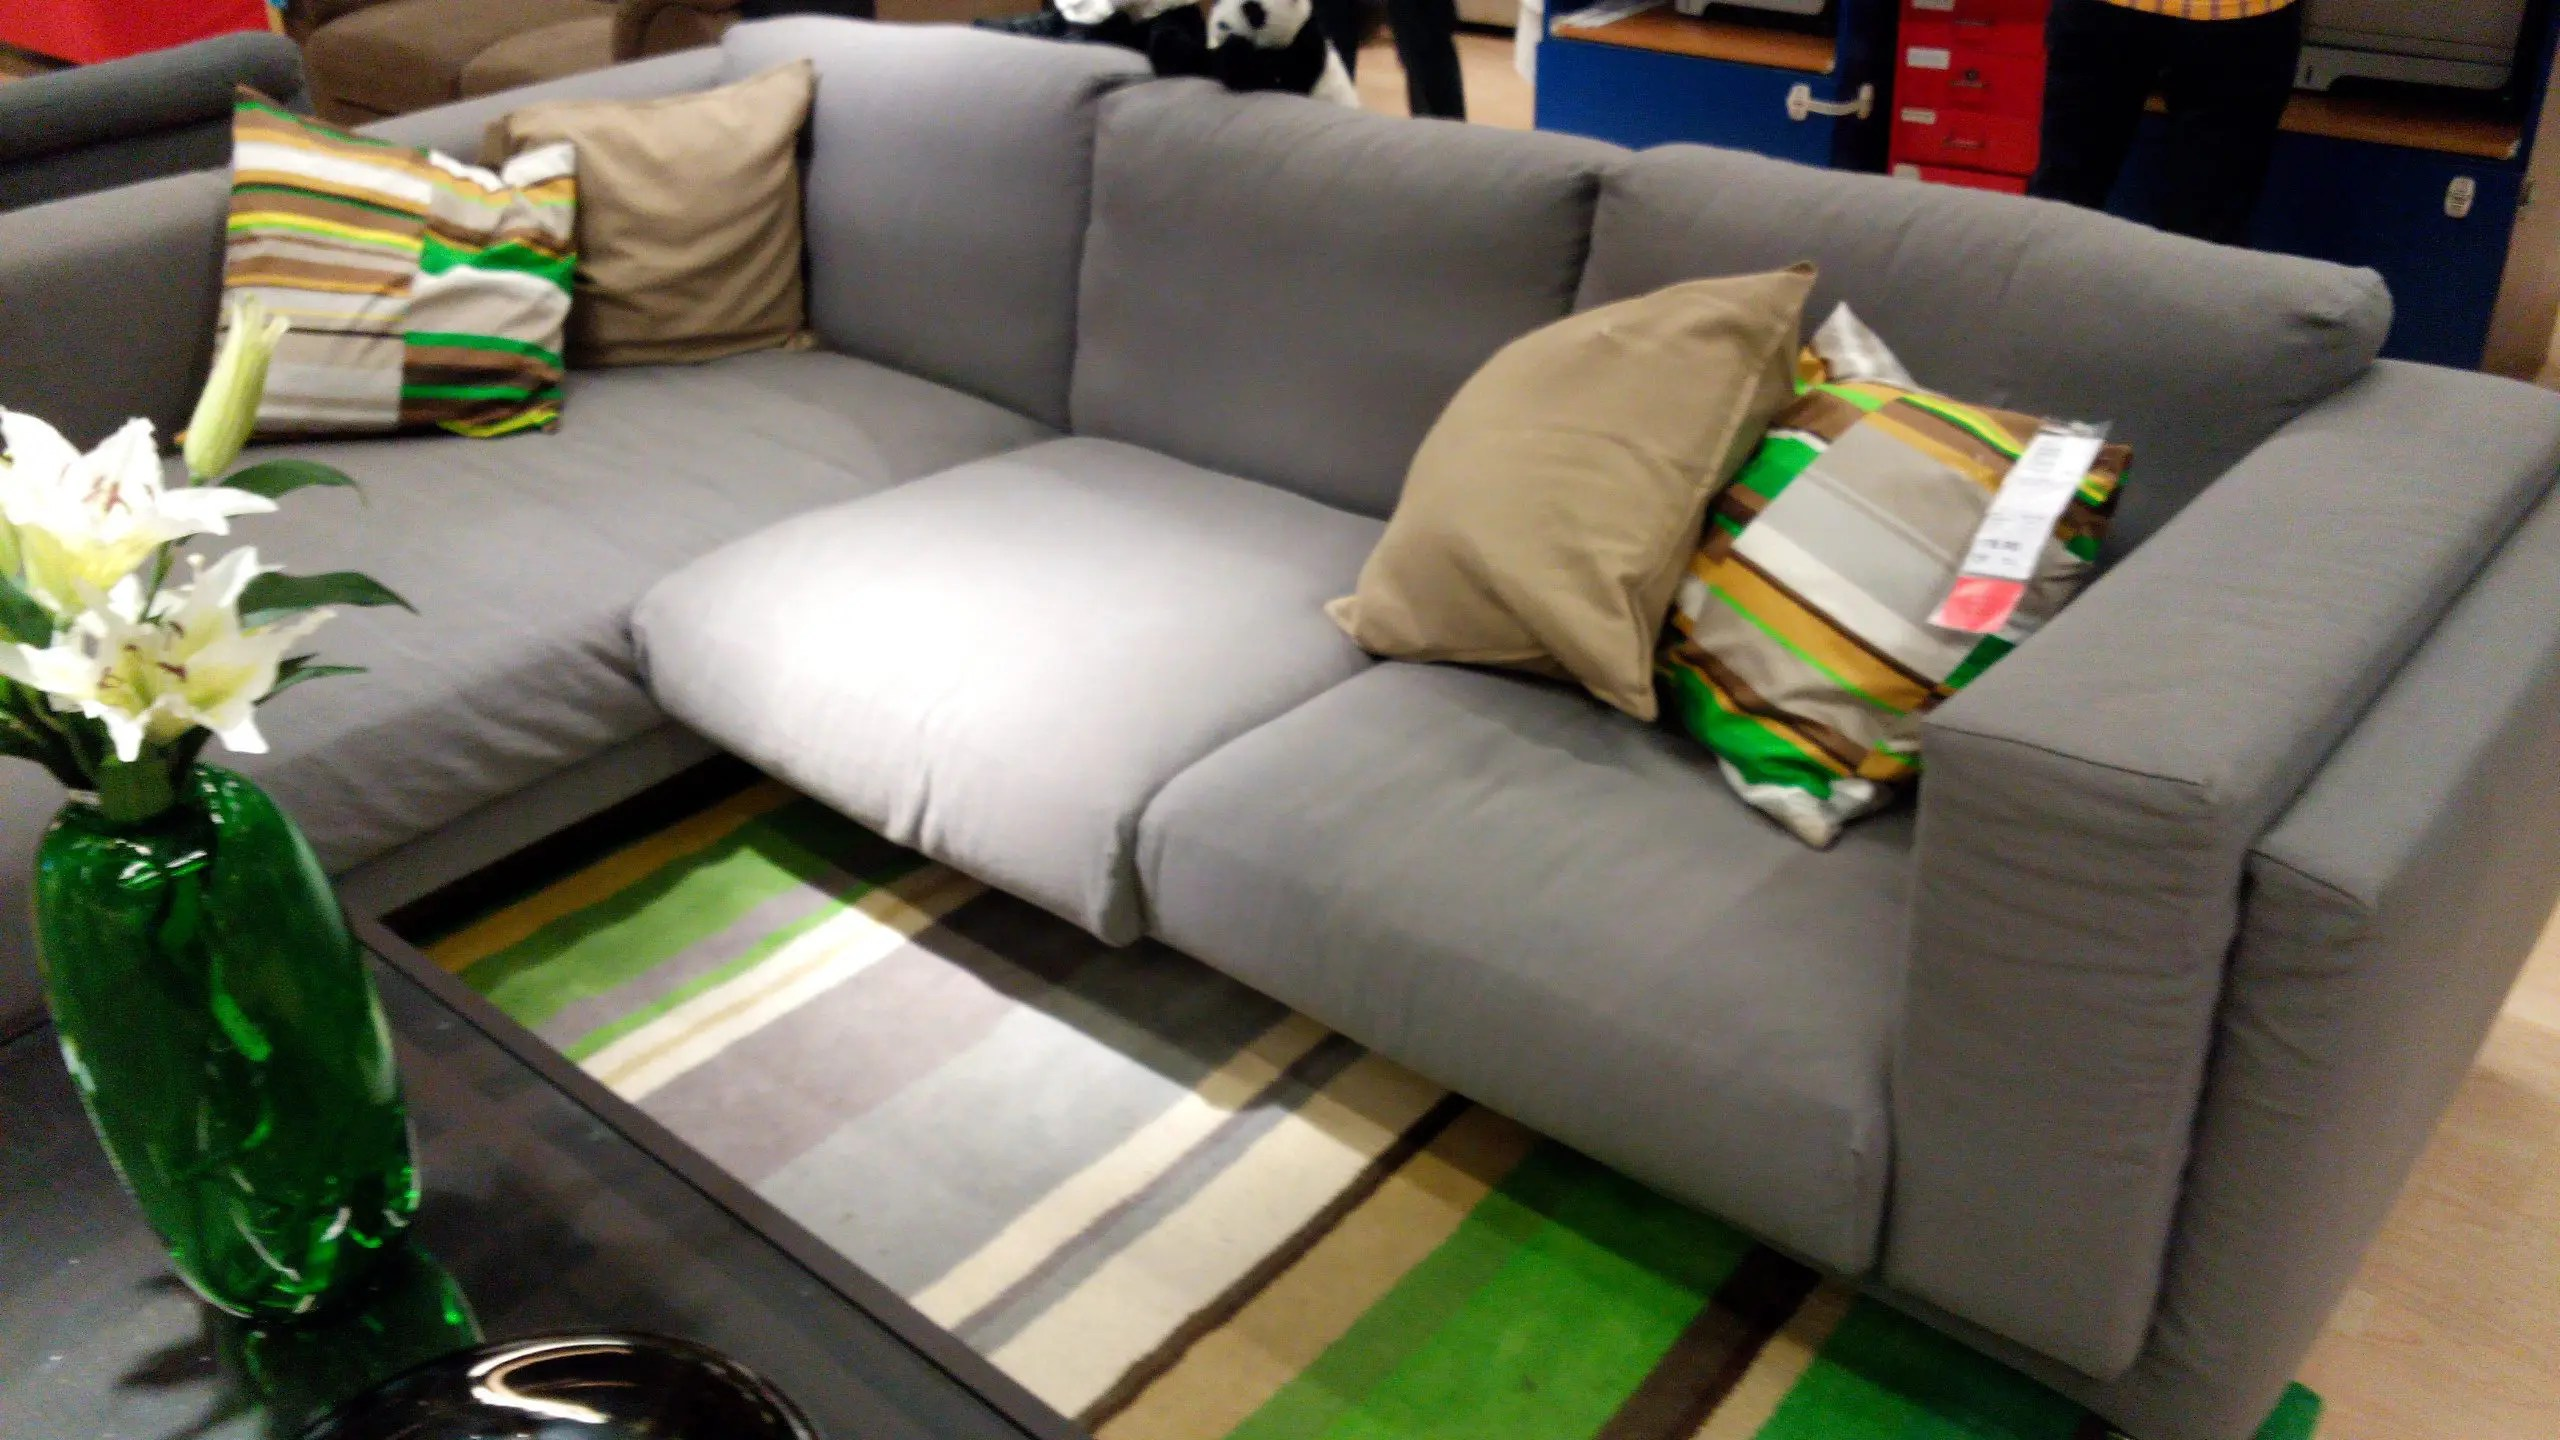 Ikea Nockeby Two Seat Sofa Ikea Nockeby Sofa Review New Ikea Couch Series Mid 2014